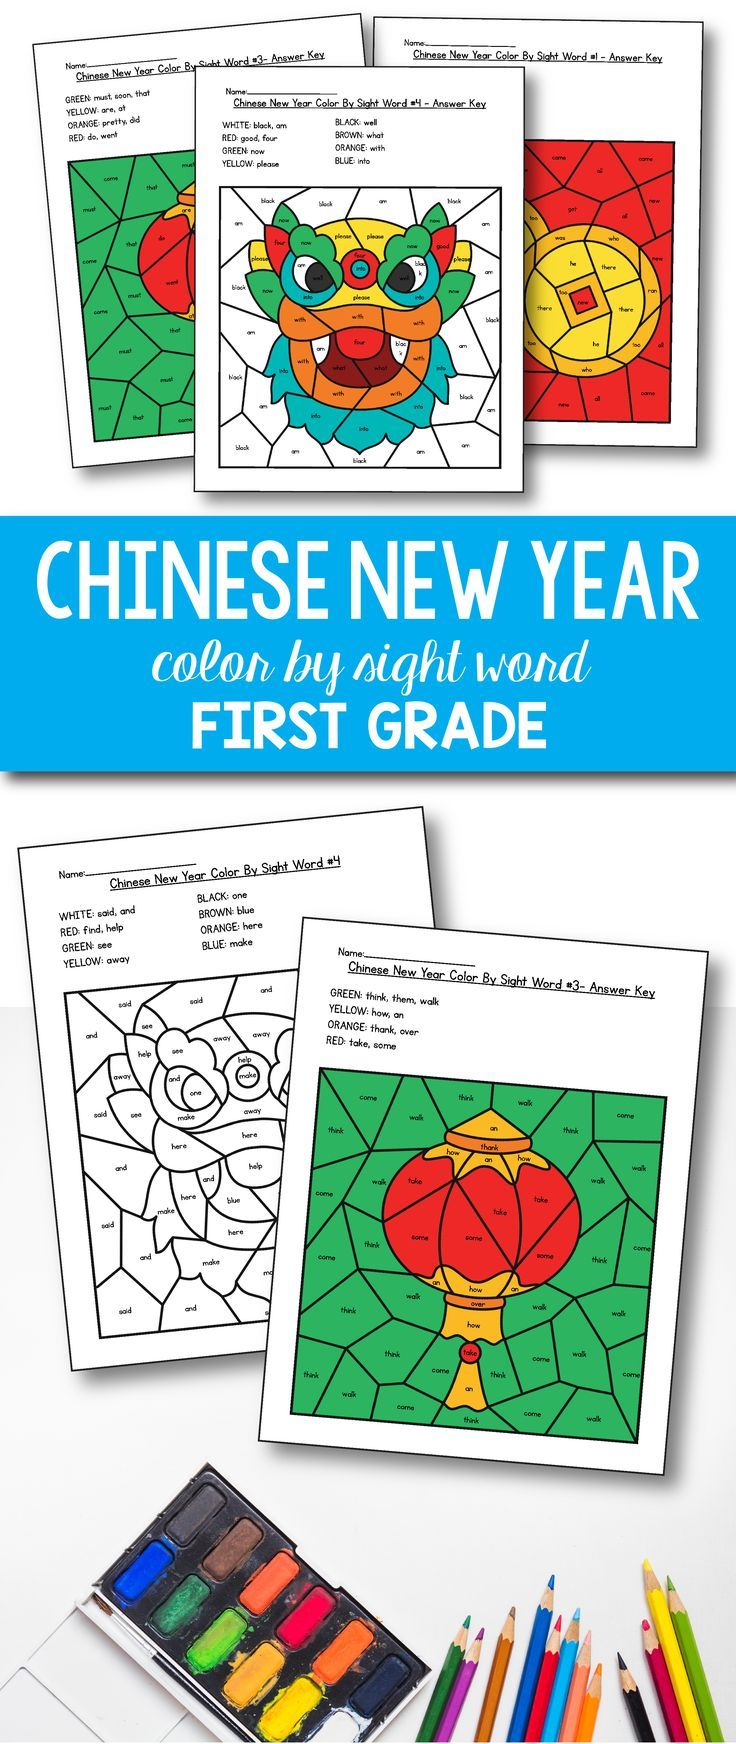 Chinese New Year Activities - Chinese New Year Coloring for 1st ...